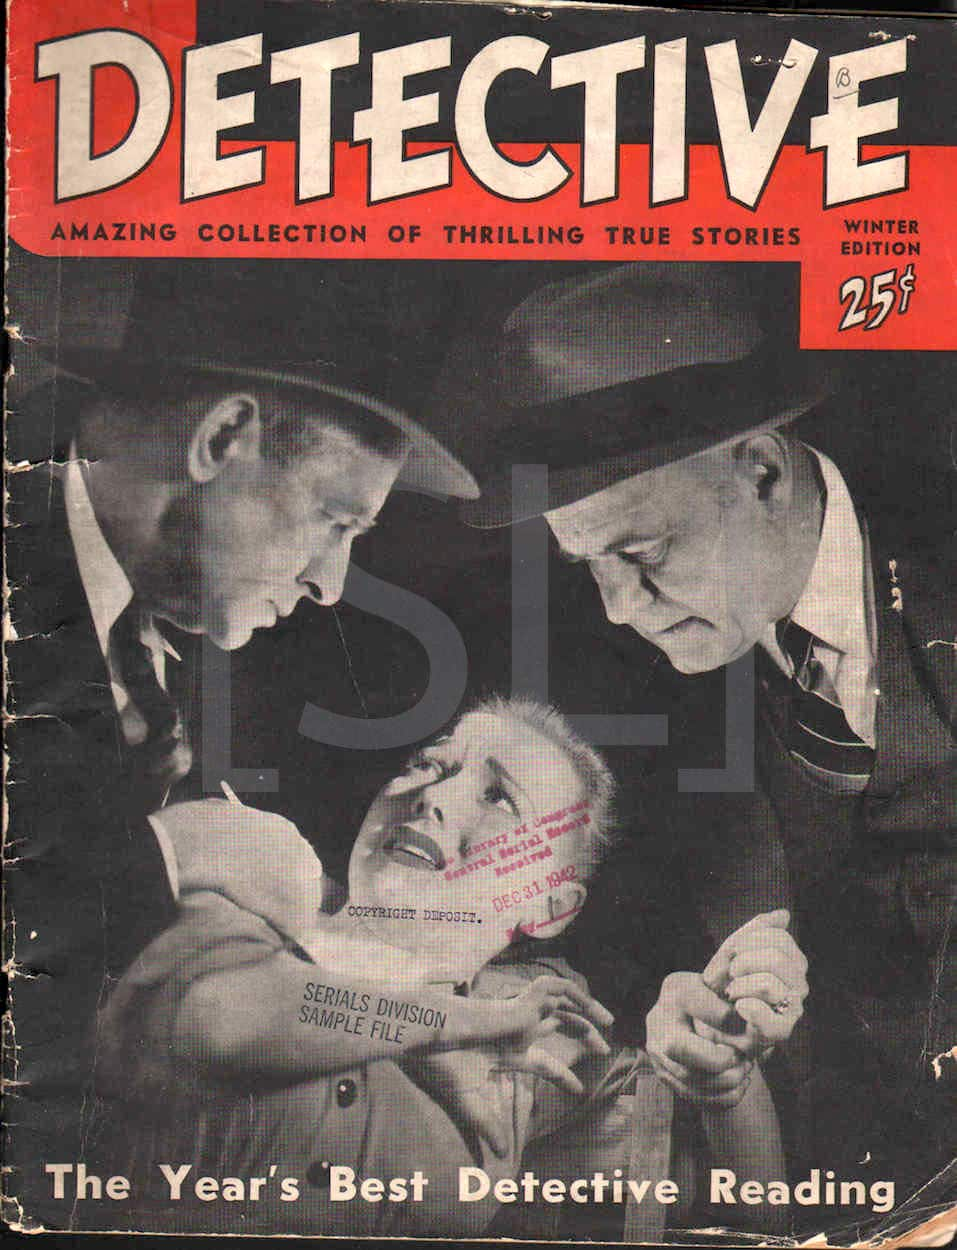 Detective; Amazing Collection of Thrilling True Stories